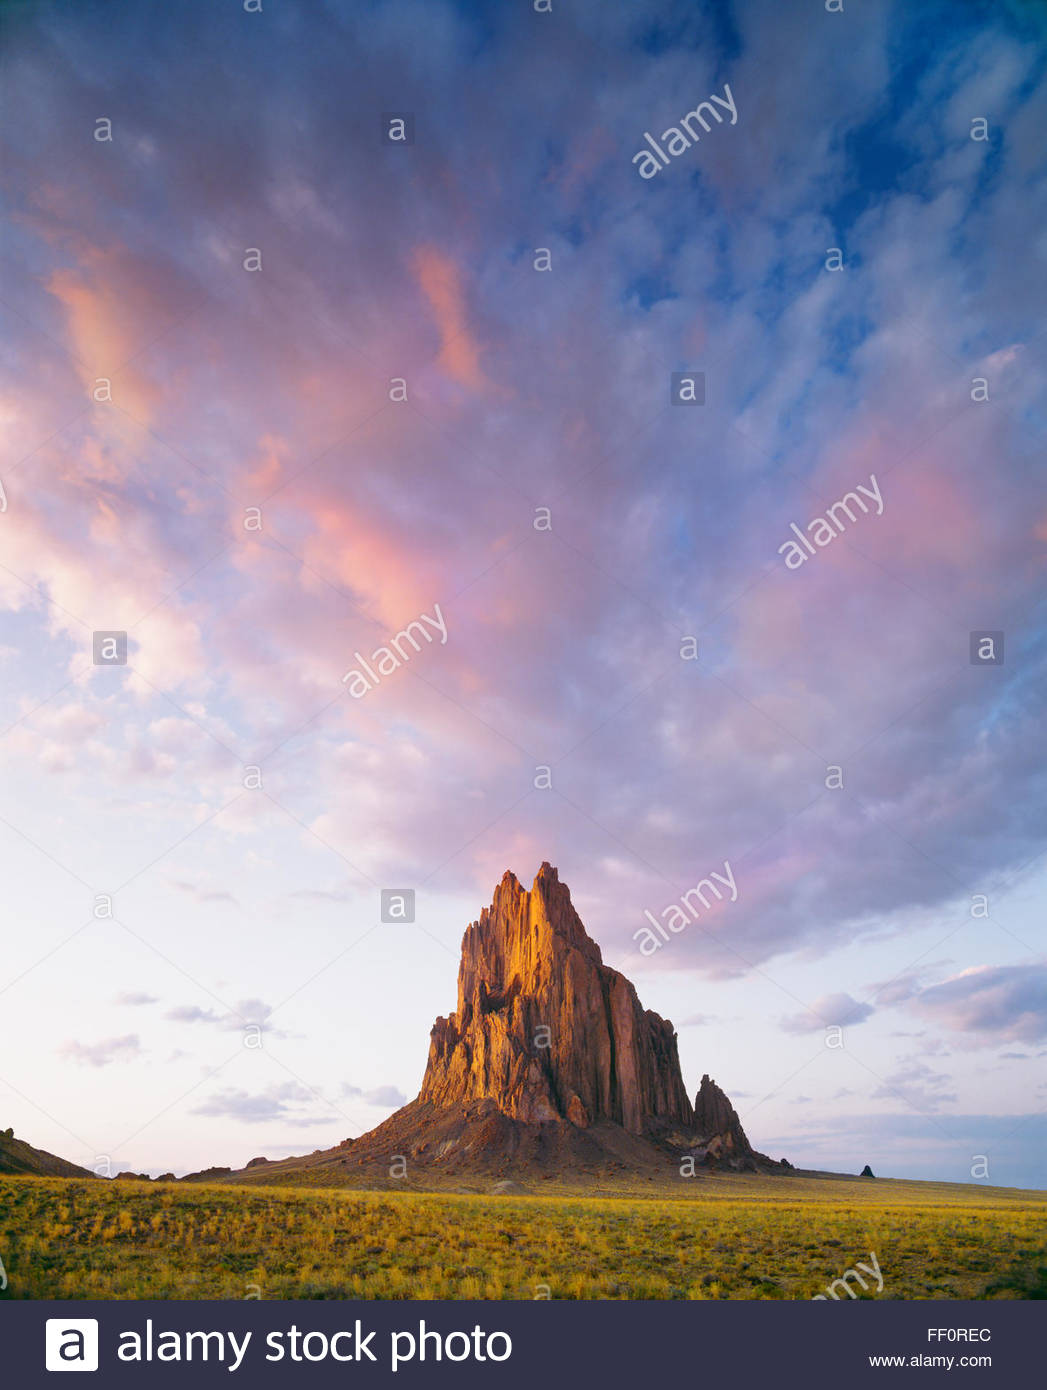 Shiprock, 1100 foot high volcanic monolith, Navajo Indian Reservation, New Mexico. - Stock Image